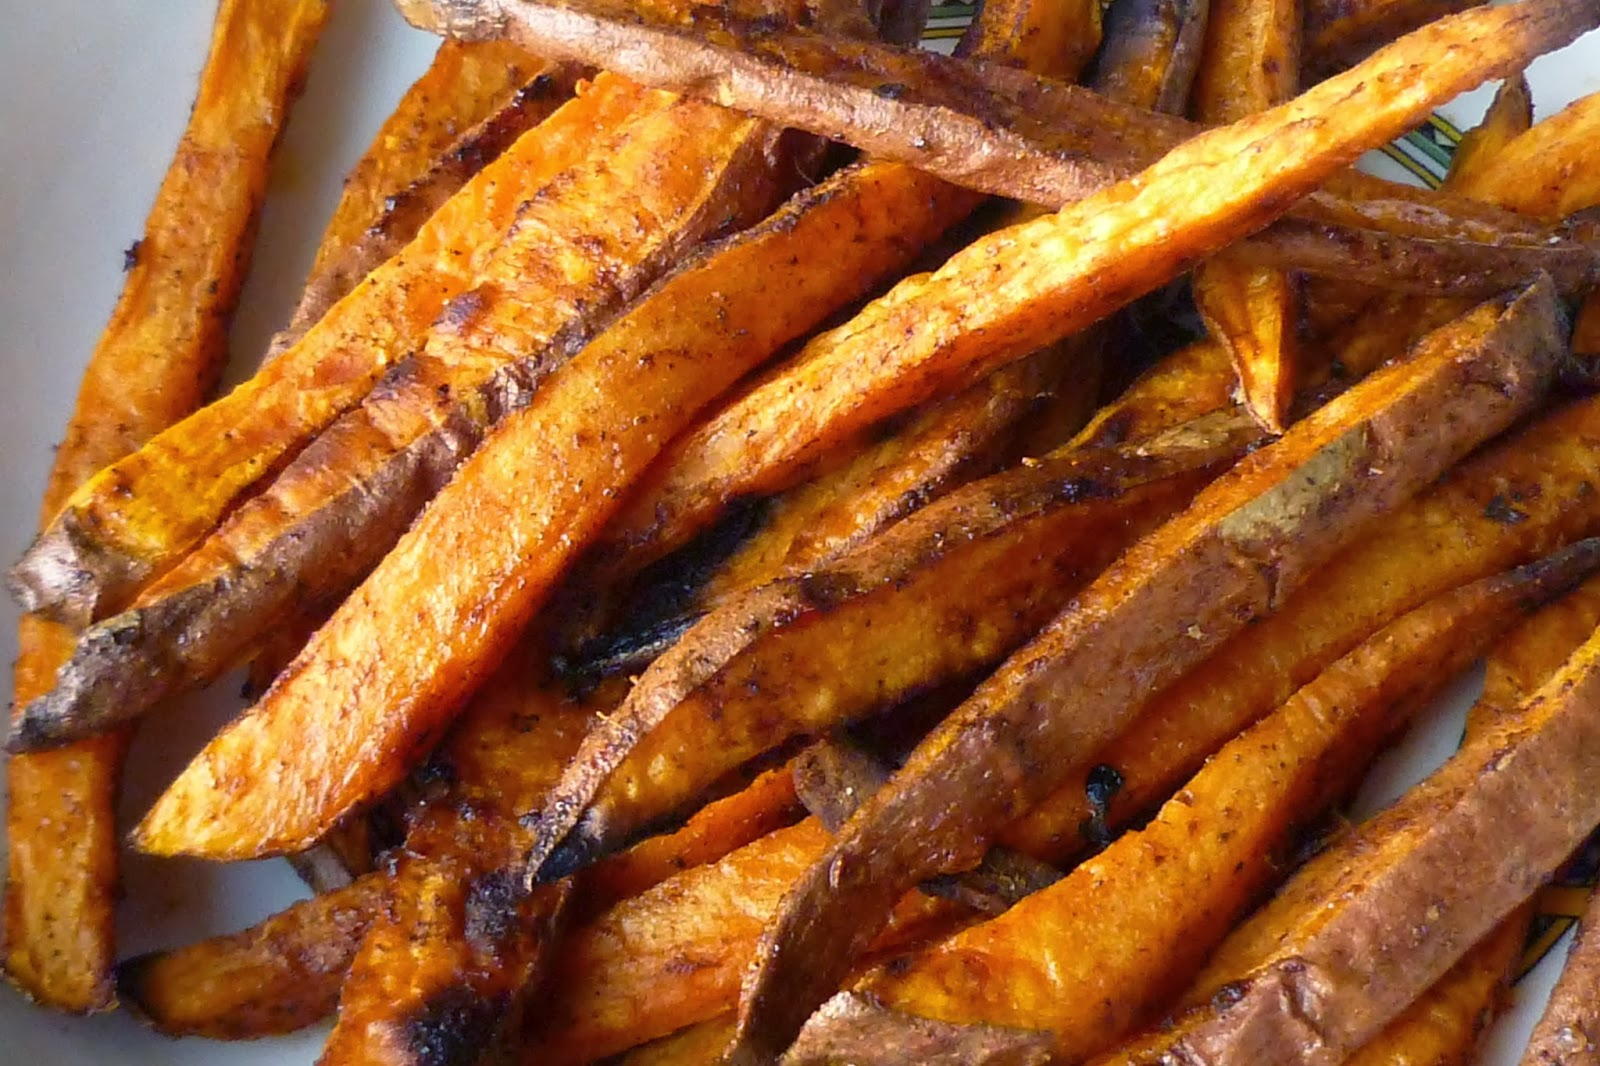 Baked Sweet Potato Fries | Foto Artis - Candydoll